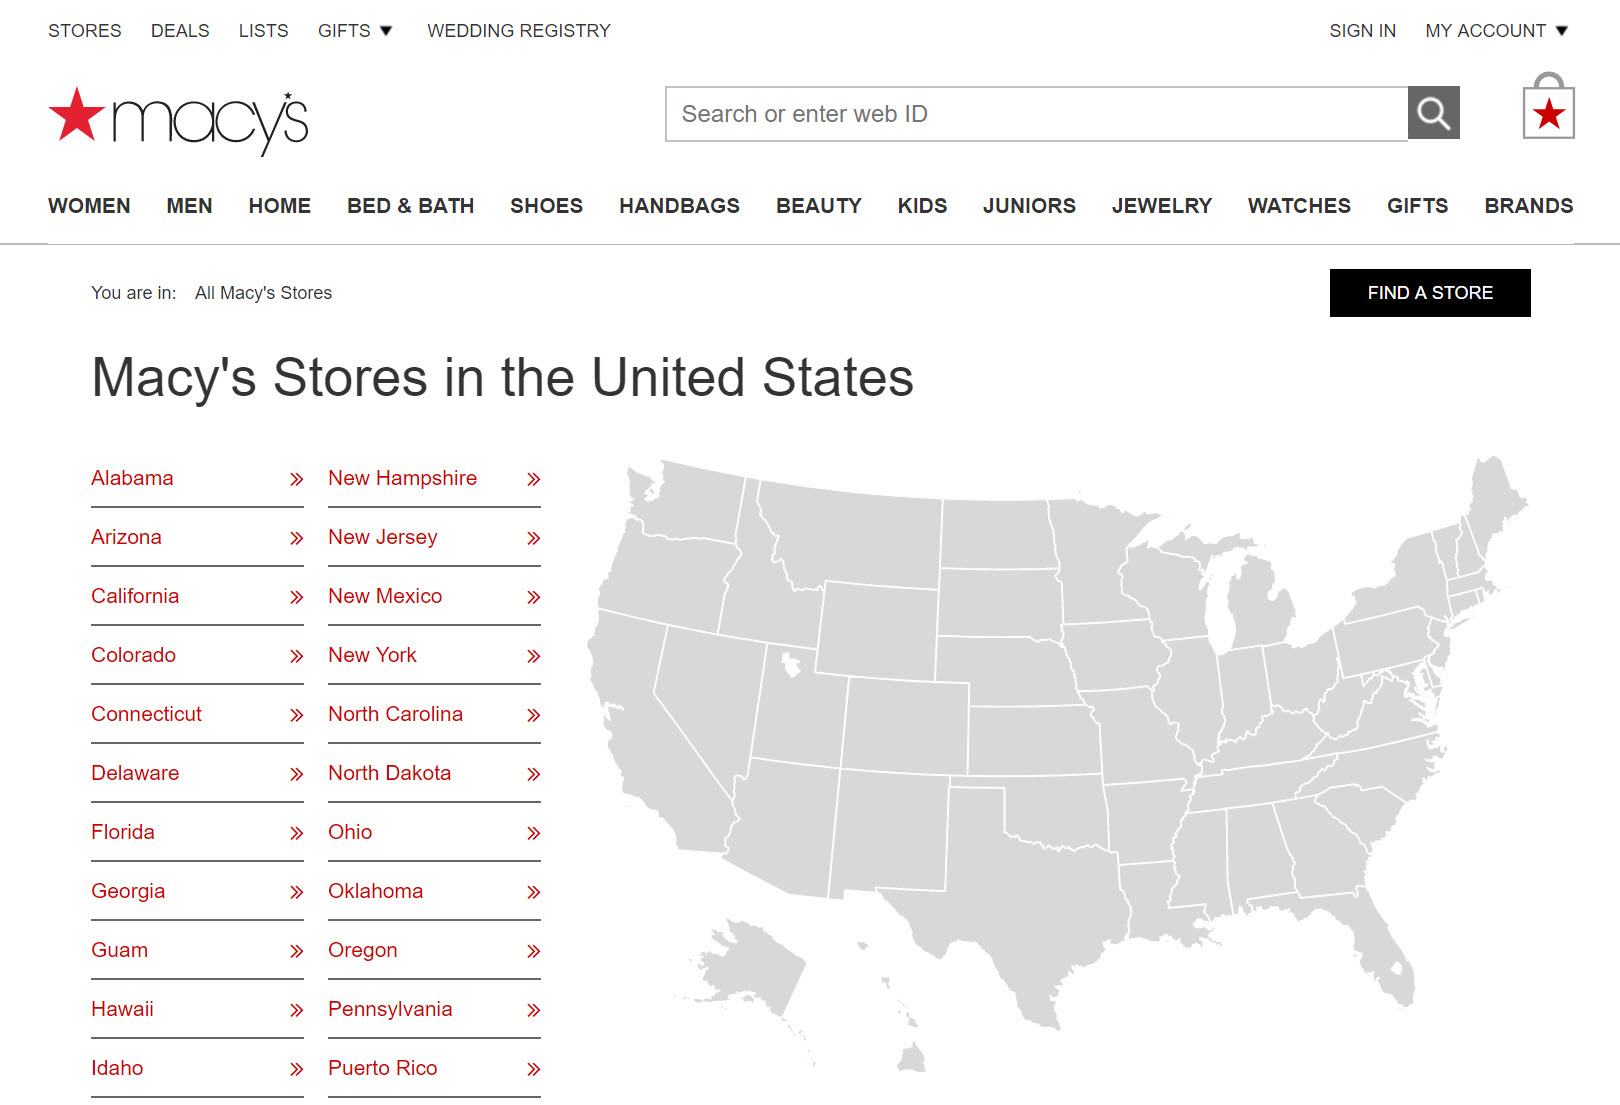 Search engines can crawl and index Macy's list of state pages.